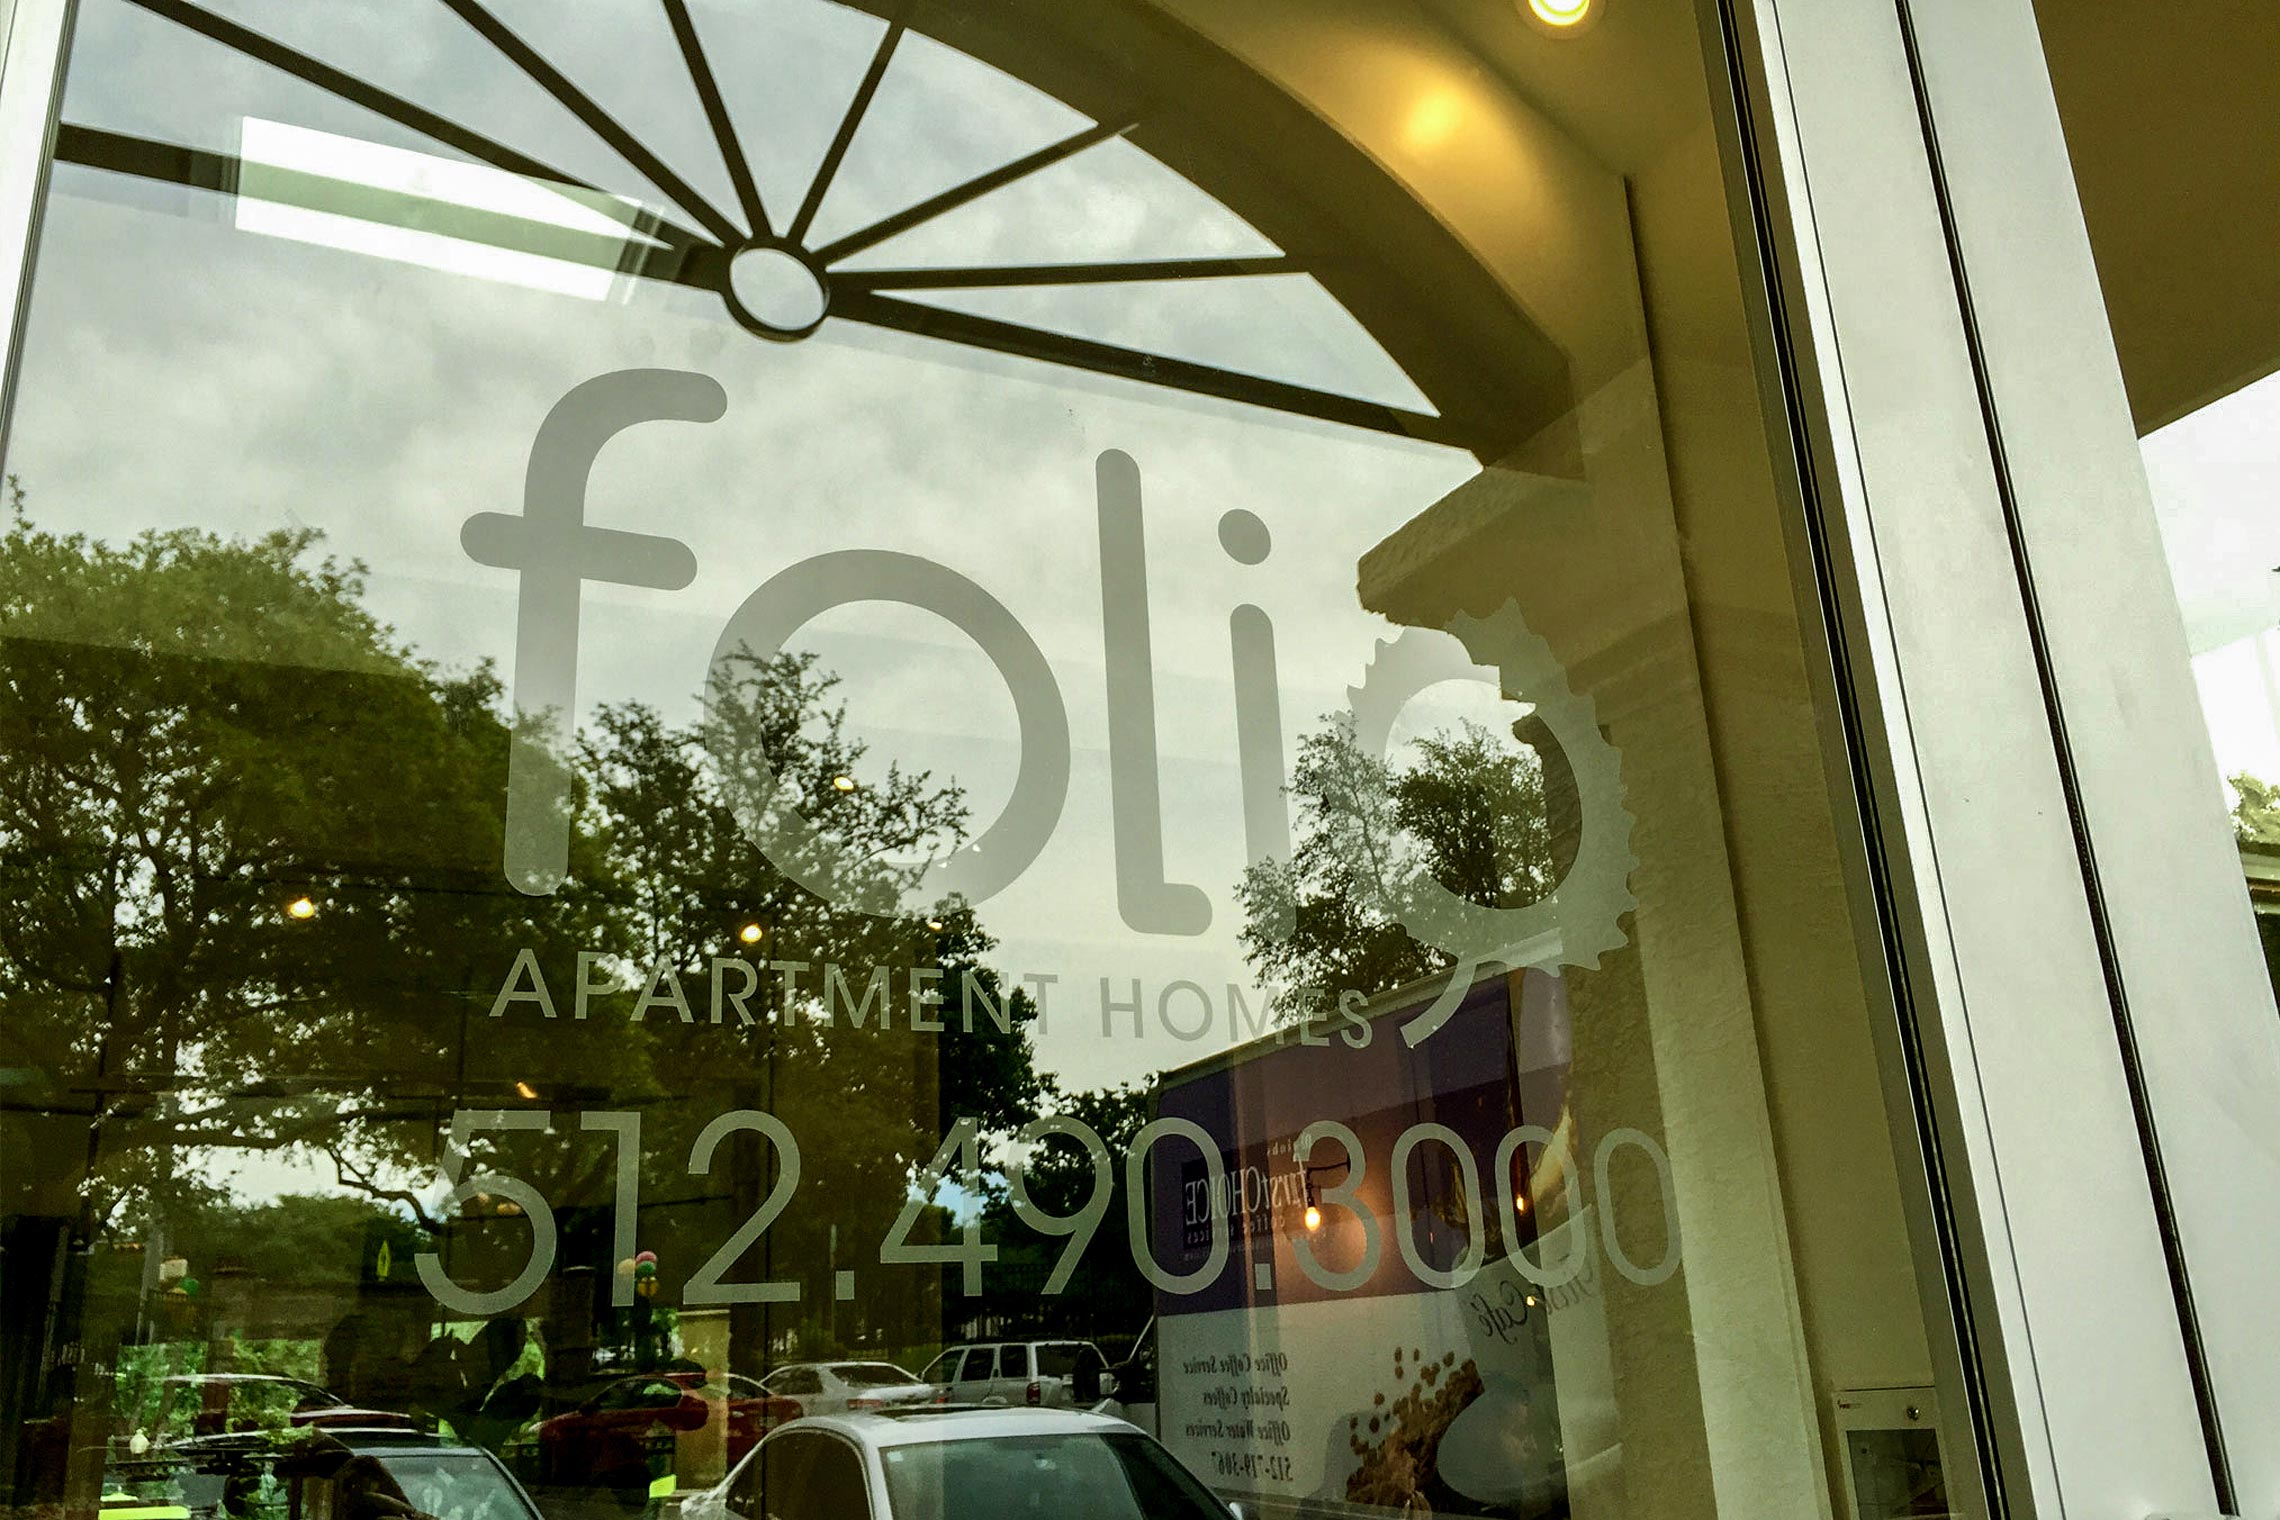 Folio Apartment Homes Logo and Phone Number Frosted Vinyl on Window